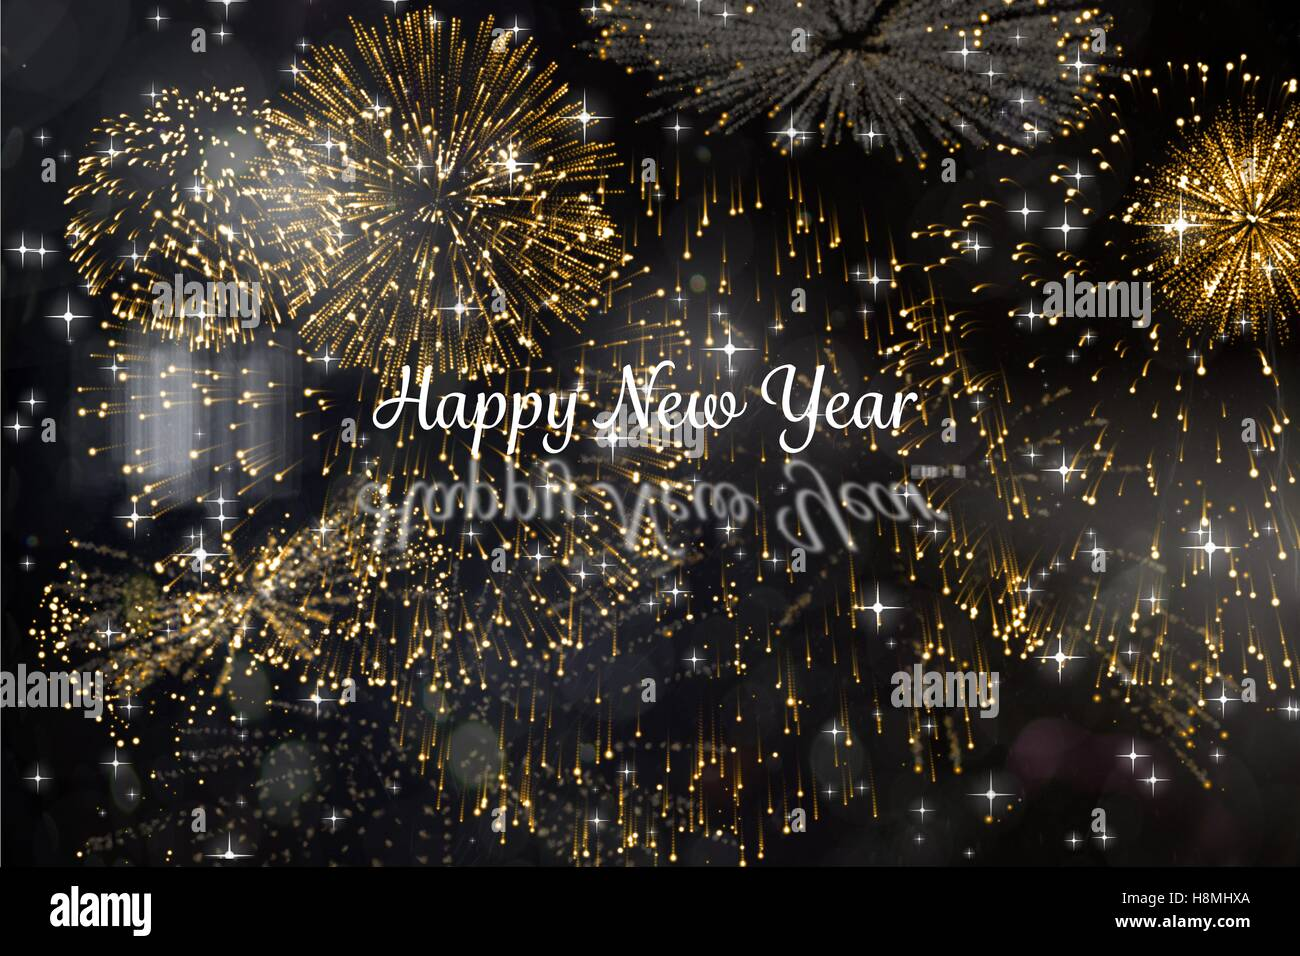 new year message on firework background design stock photo